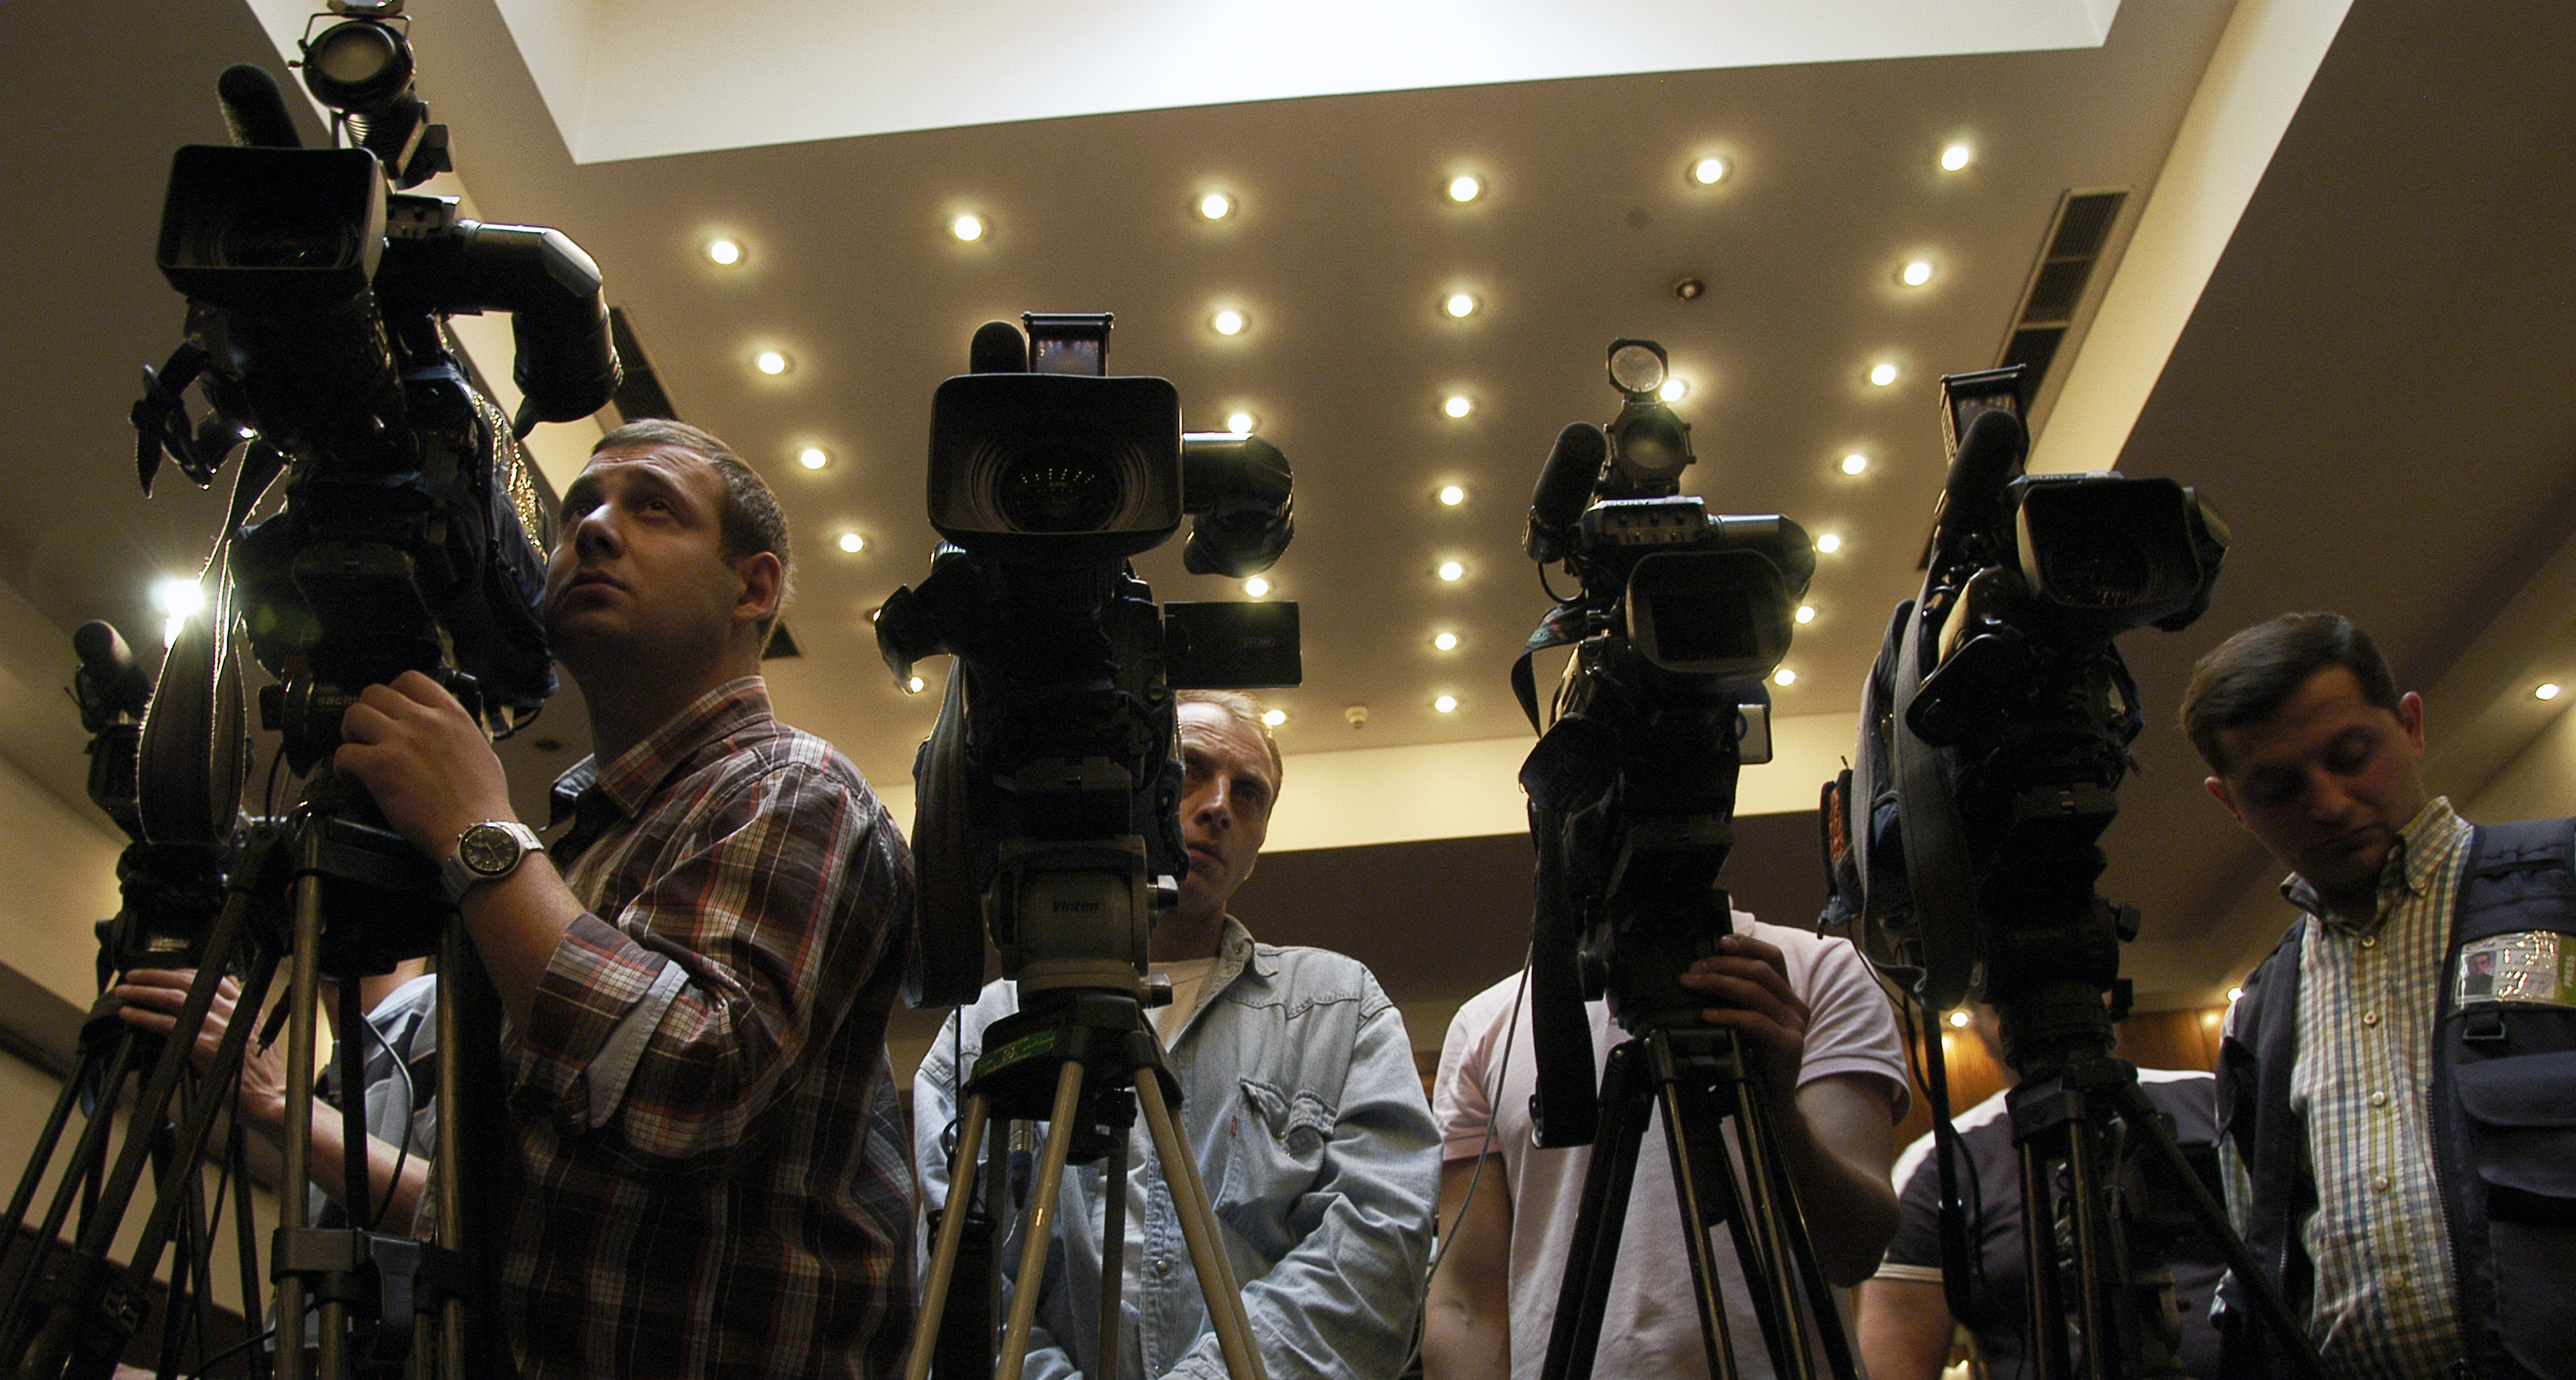 Camera_crews_at_the_joint_Press_Conference_given_by_the_Congress_and_the_ODIHR._Tbilisi,_2010.jpg (3599×1928)